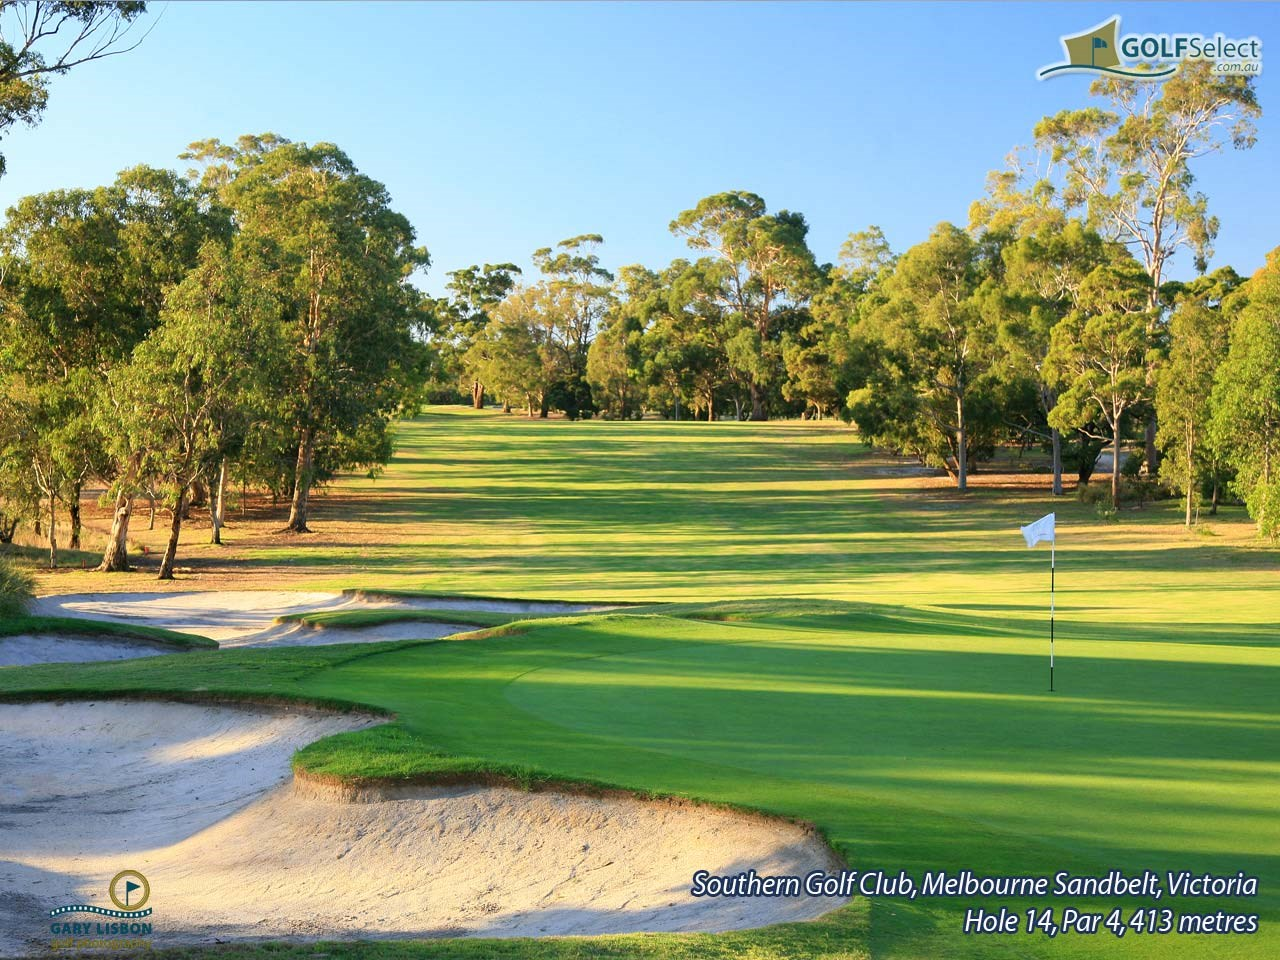 Southern Golf Club Hole 14, Par 4, 413 metres